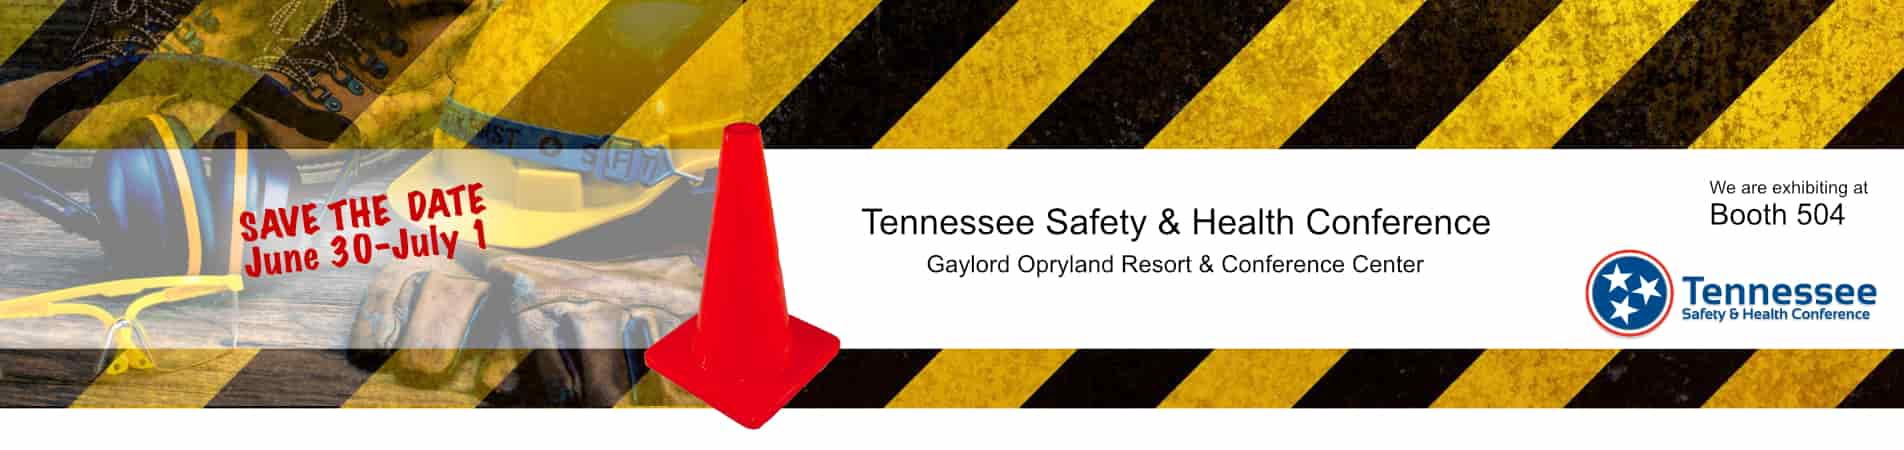 Tennessee Safety & Health Conference